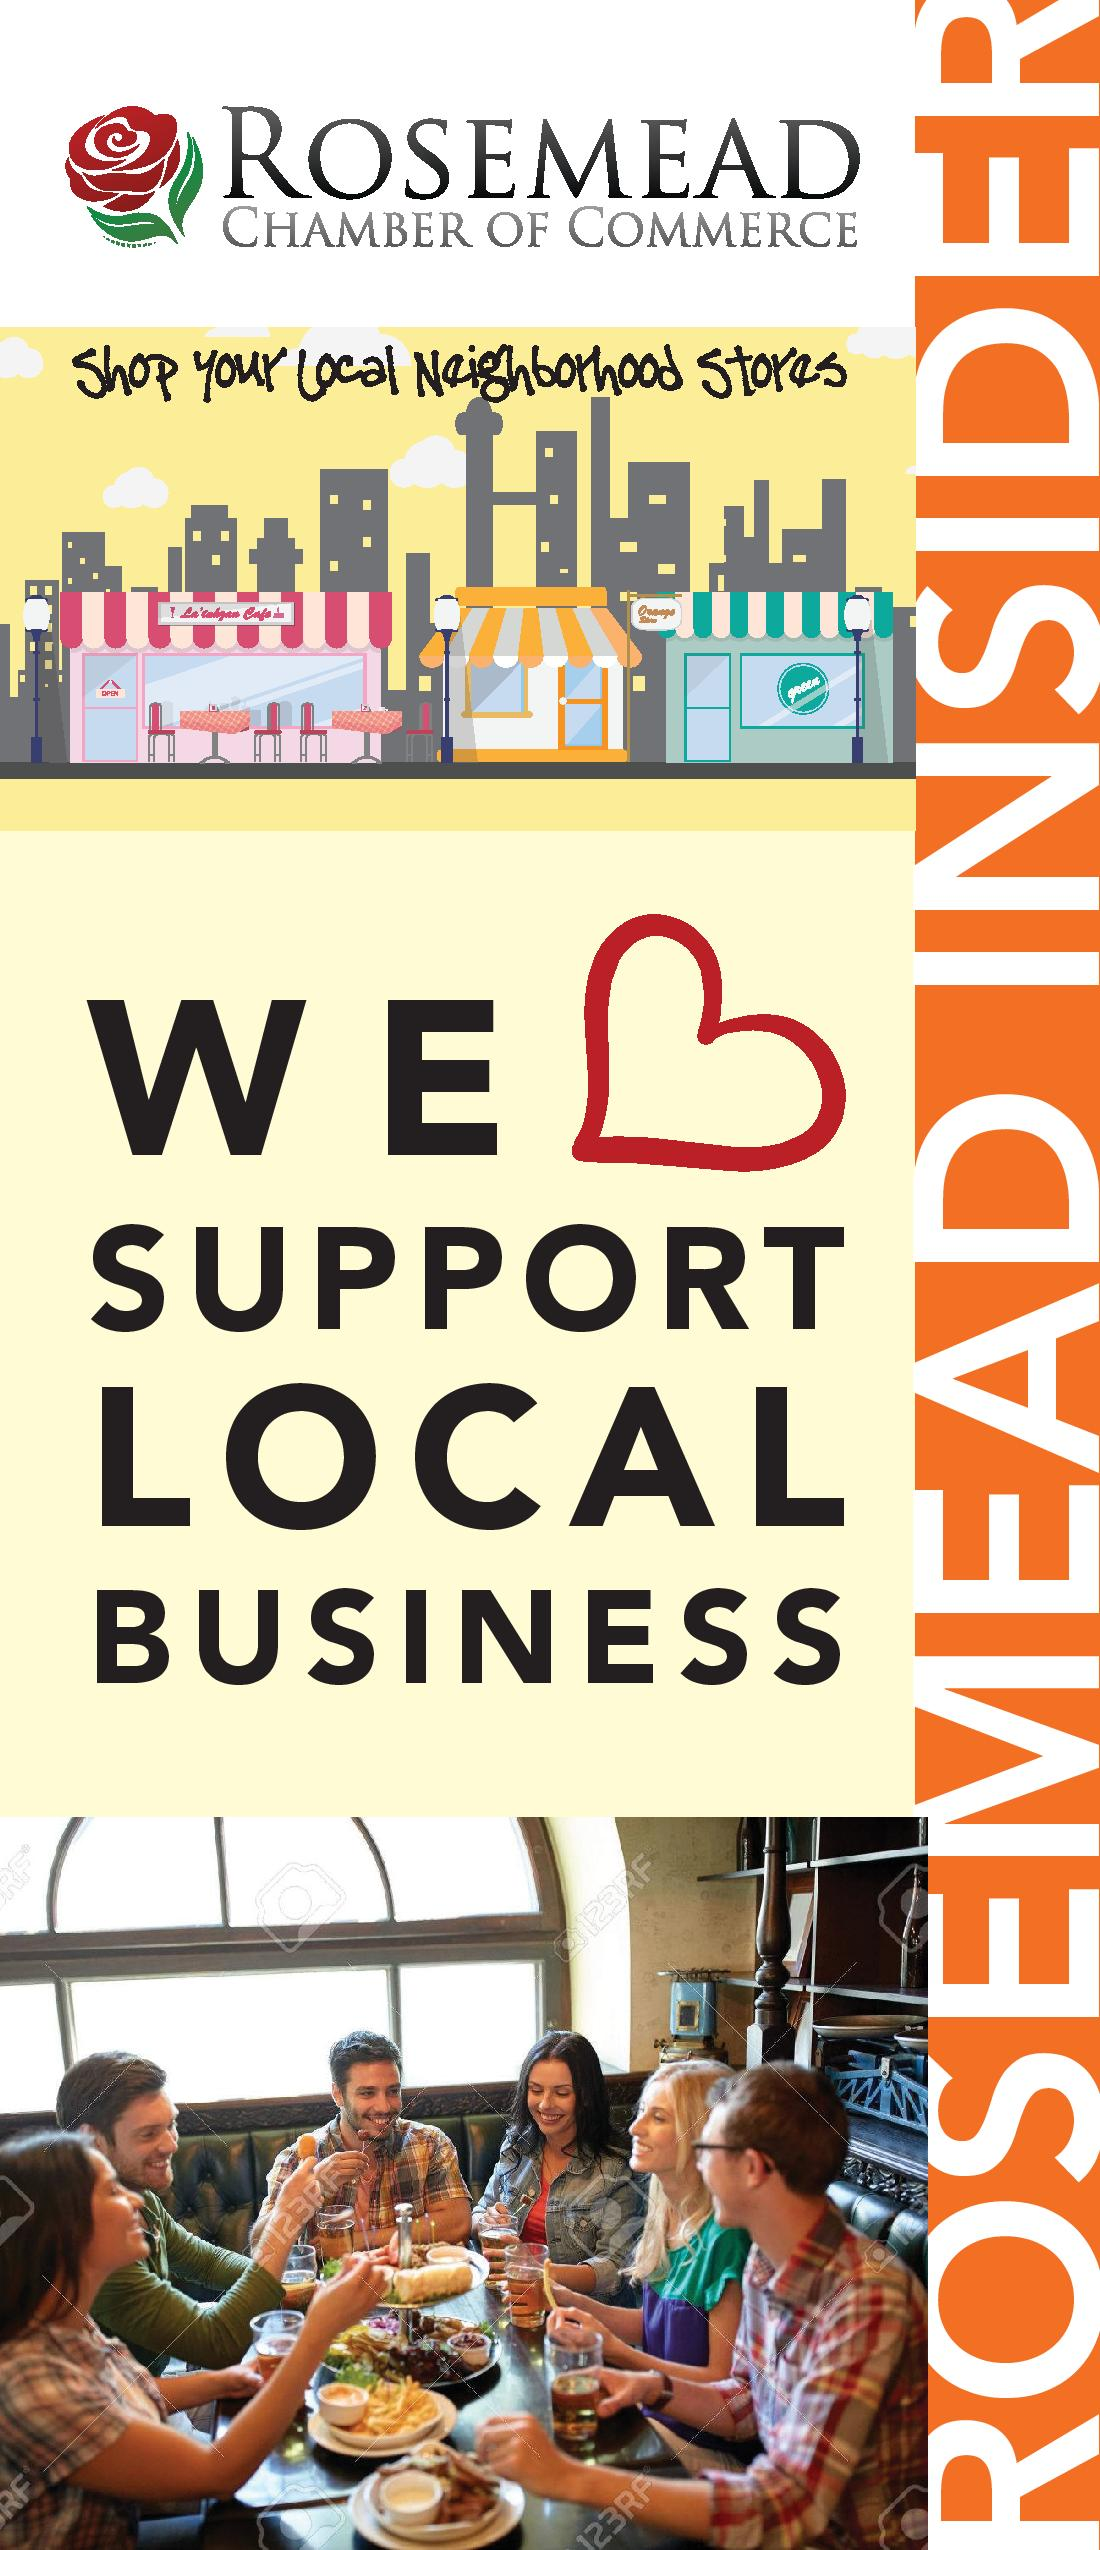 rosemead insider - Check out our coupon book with amazing deals where we aim to promote the local business as well as help the consumers save. Stop by our office to pick up your copies before the deals are gone!